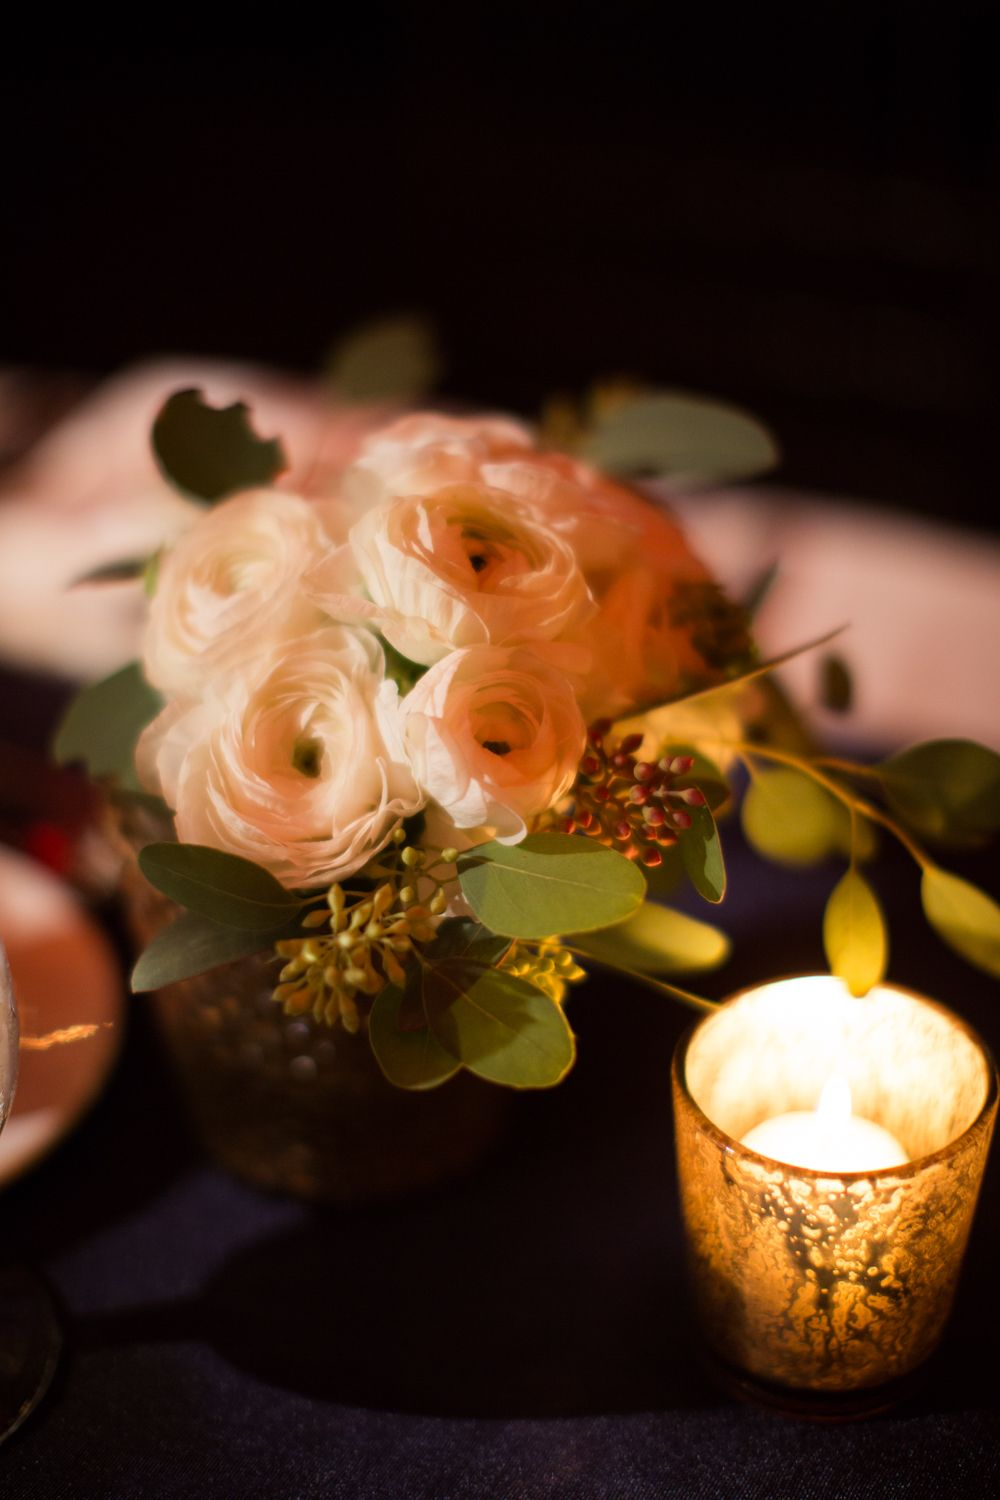 Candles, Flowers & a Navy Table Runner - Kate Rose Photography #aldencastle #weddings #modernvintage #navy #flowers